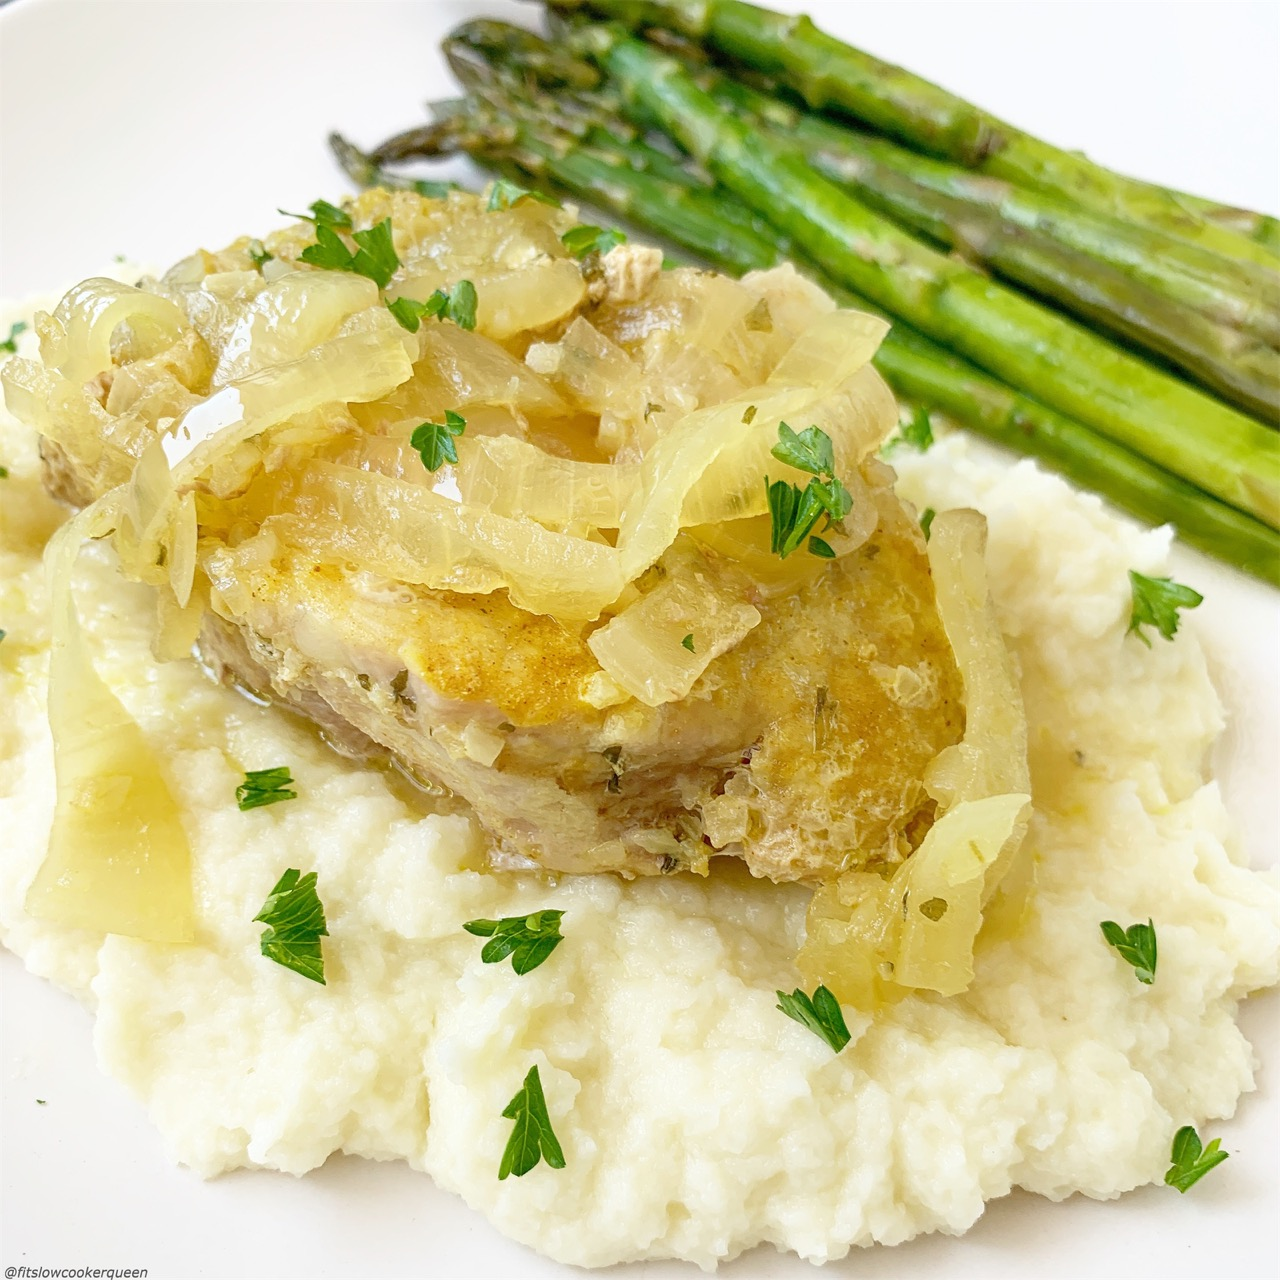 French onion pork chops on top of mashed cauliflower served with asparagus.